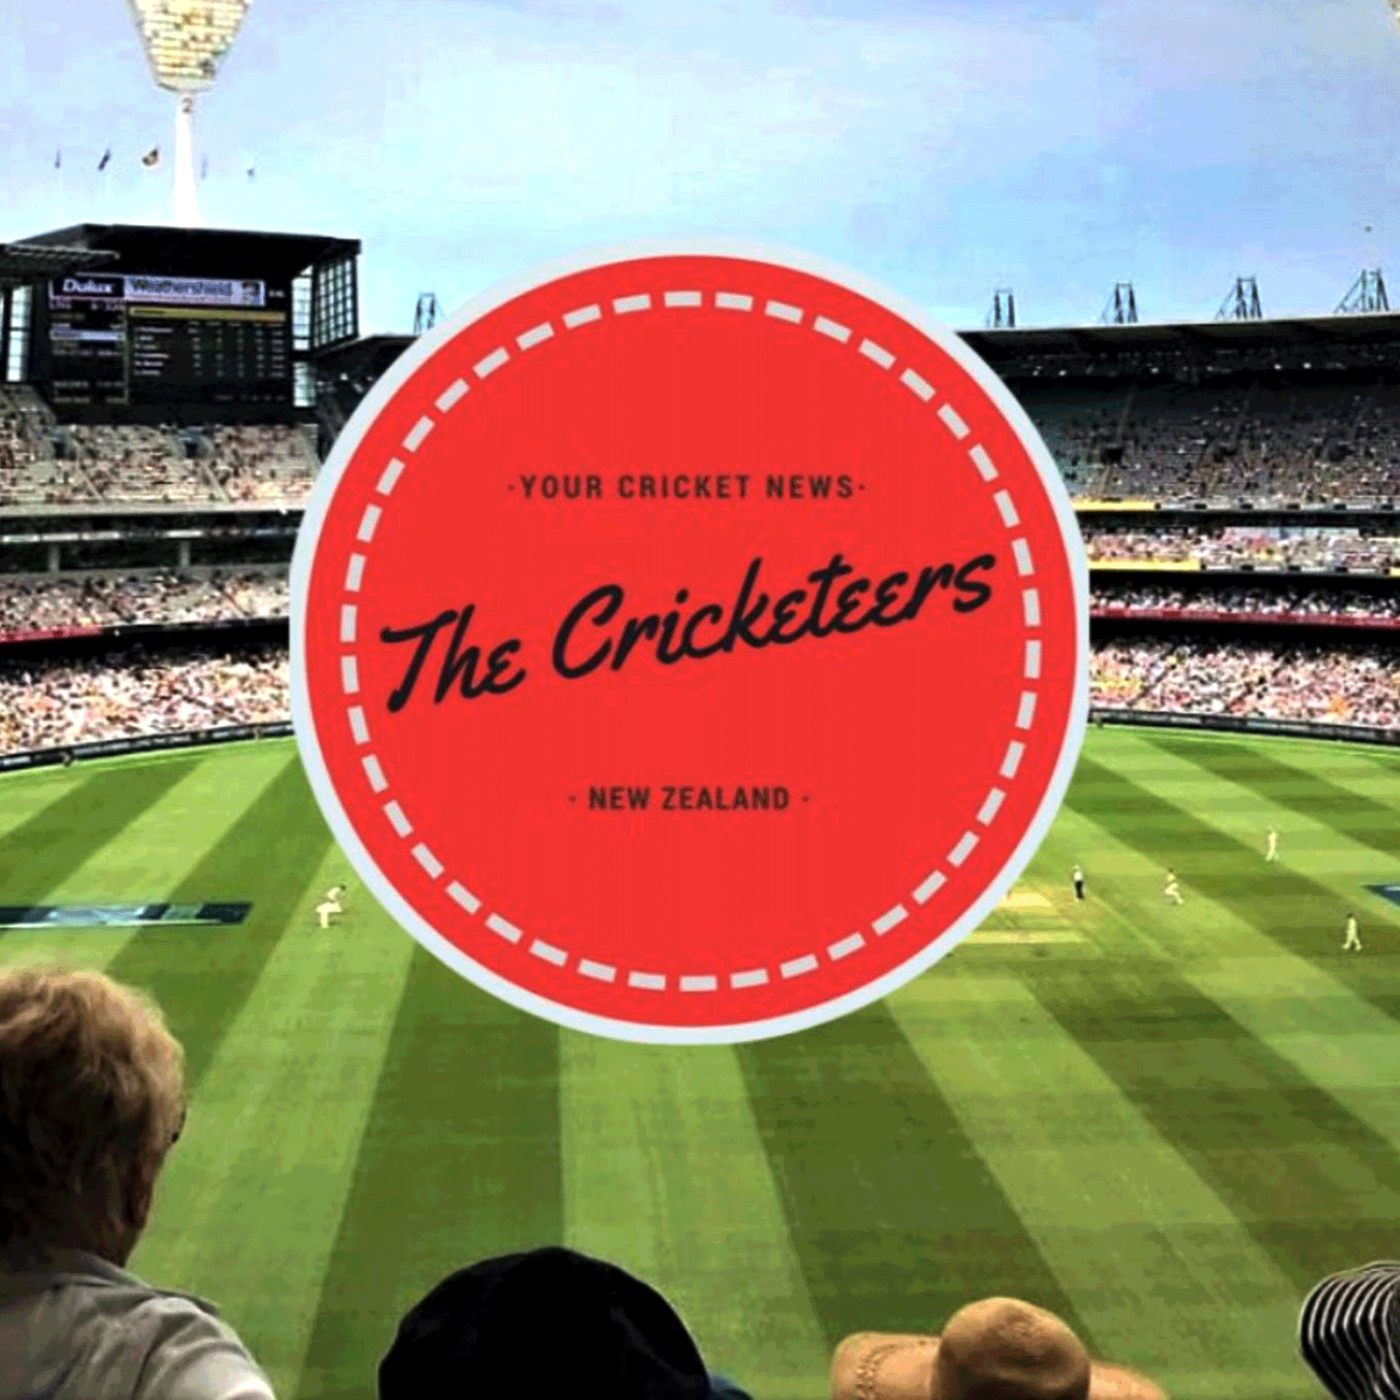 The Cricketeers